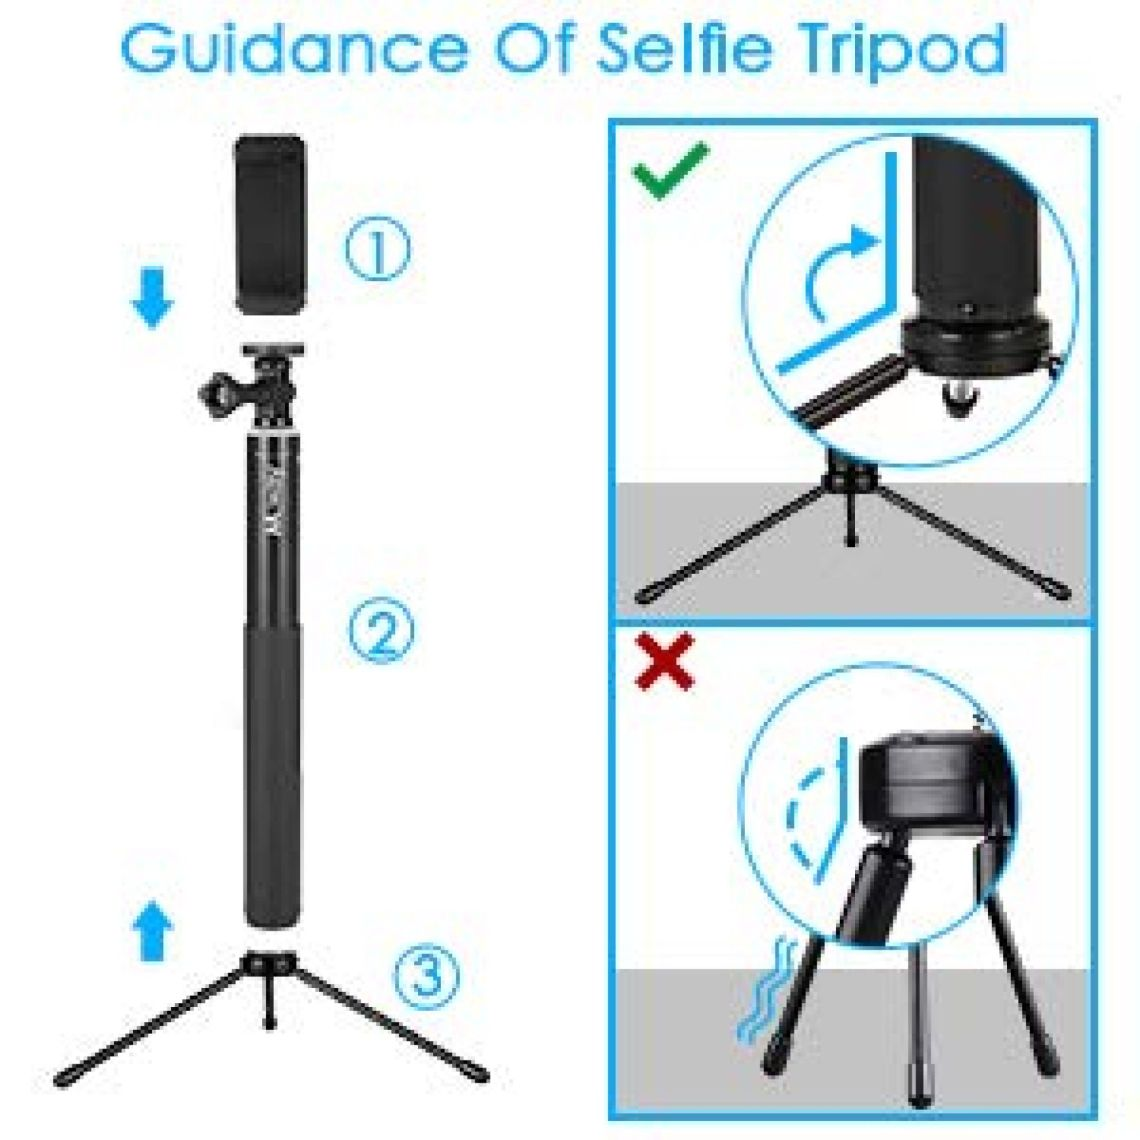 Amazon.com: MWAY Selfie Stick 2 In 1 Portable Phone Tripod Camera Stand with Remote Control And Universal Phone Holder, Extendabale Monopod for iPhone X/8/7/6, Galaxy Note 8/S8, Gopros, Mini SLR Camera black: Home Improvement